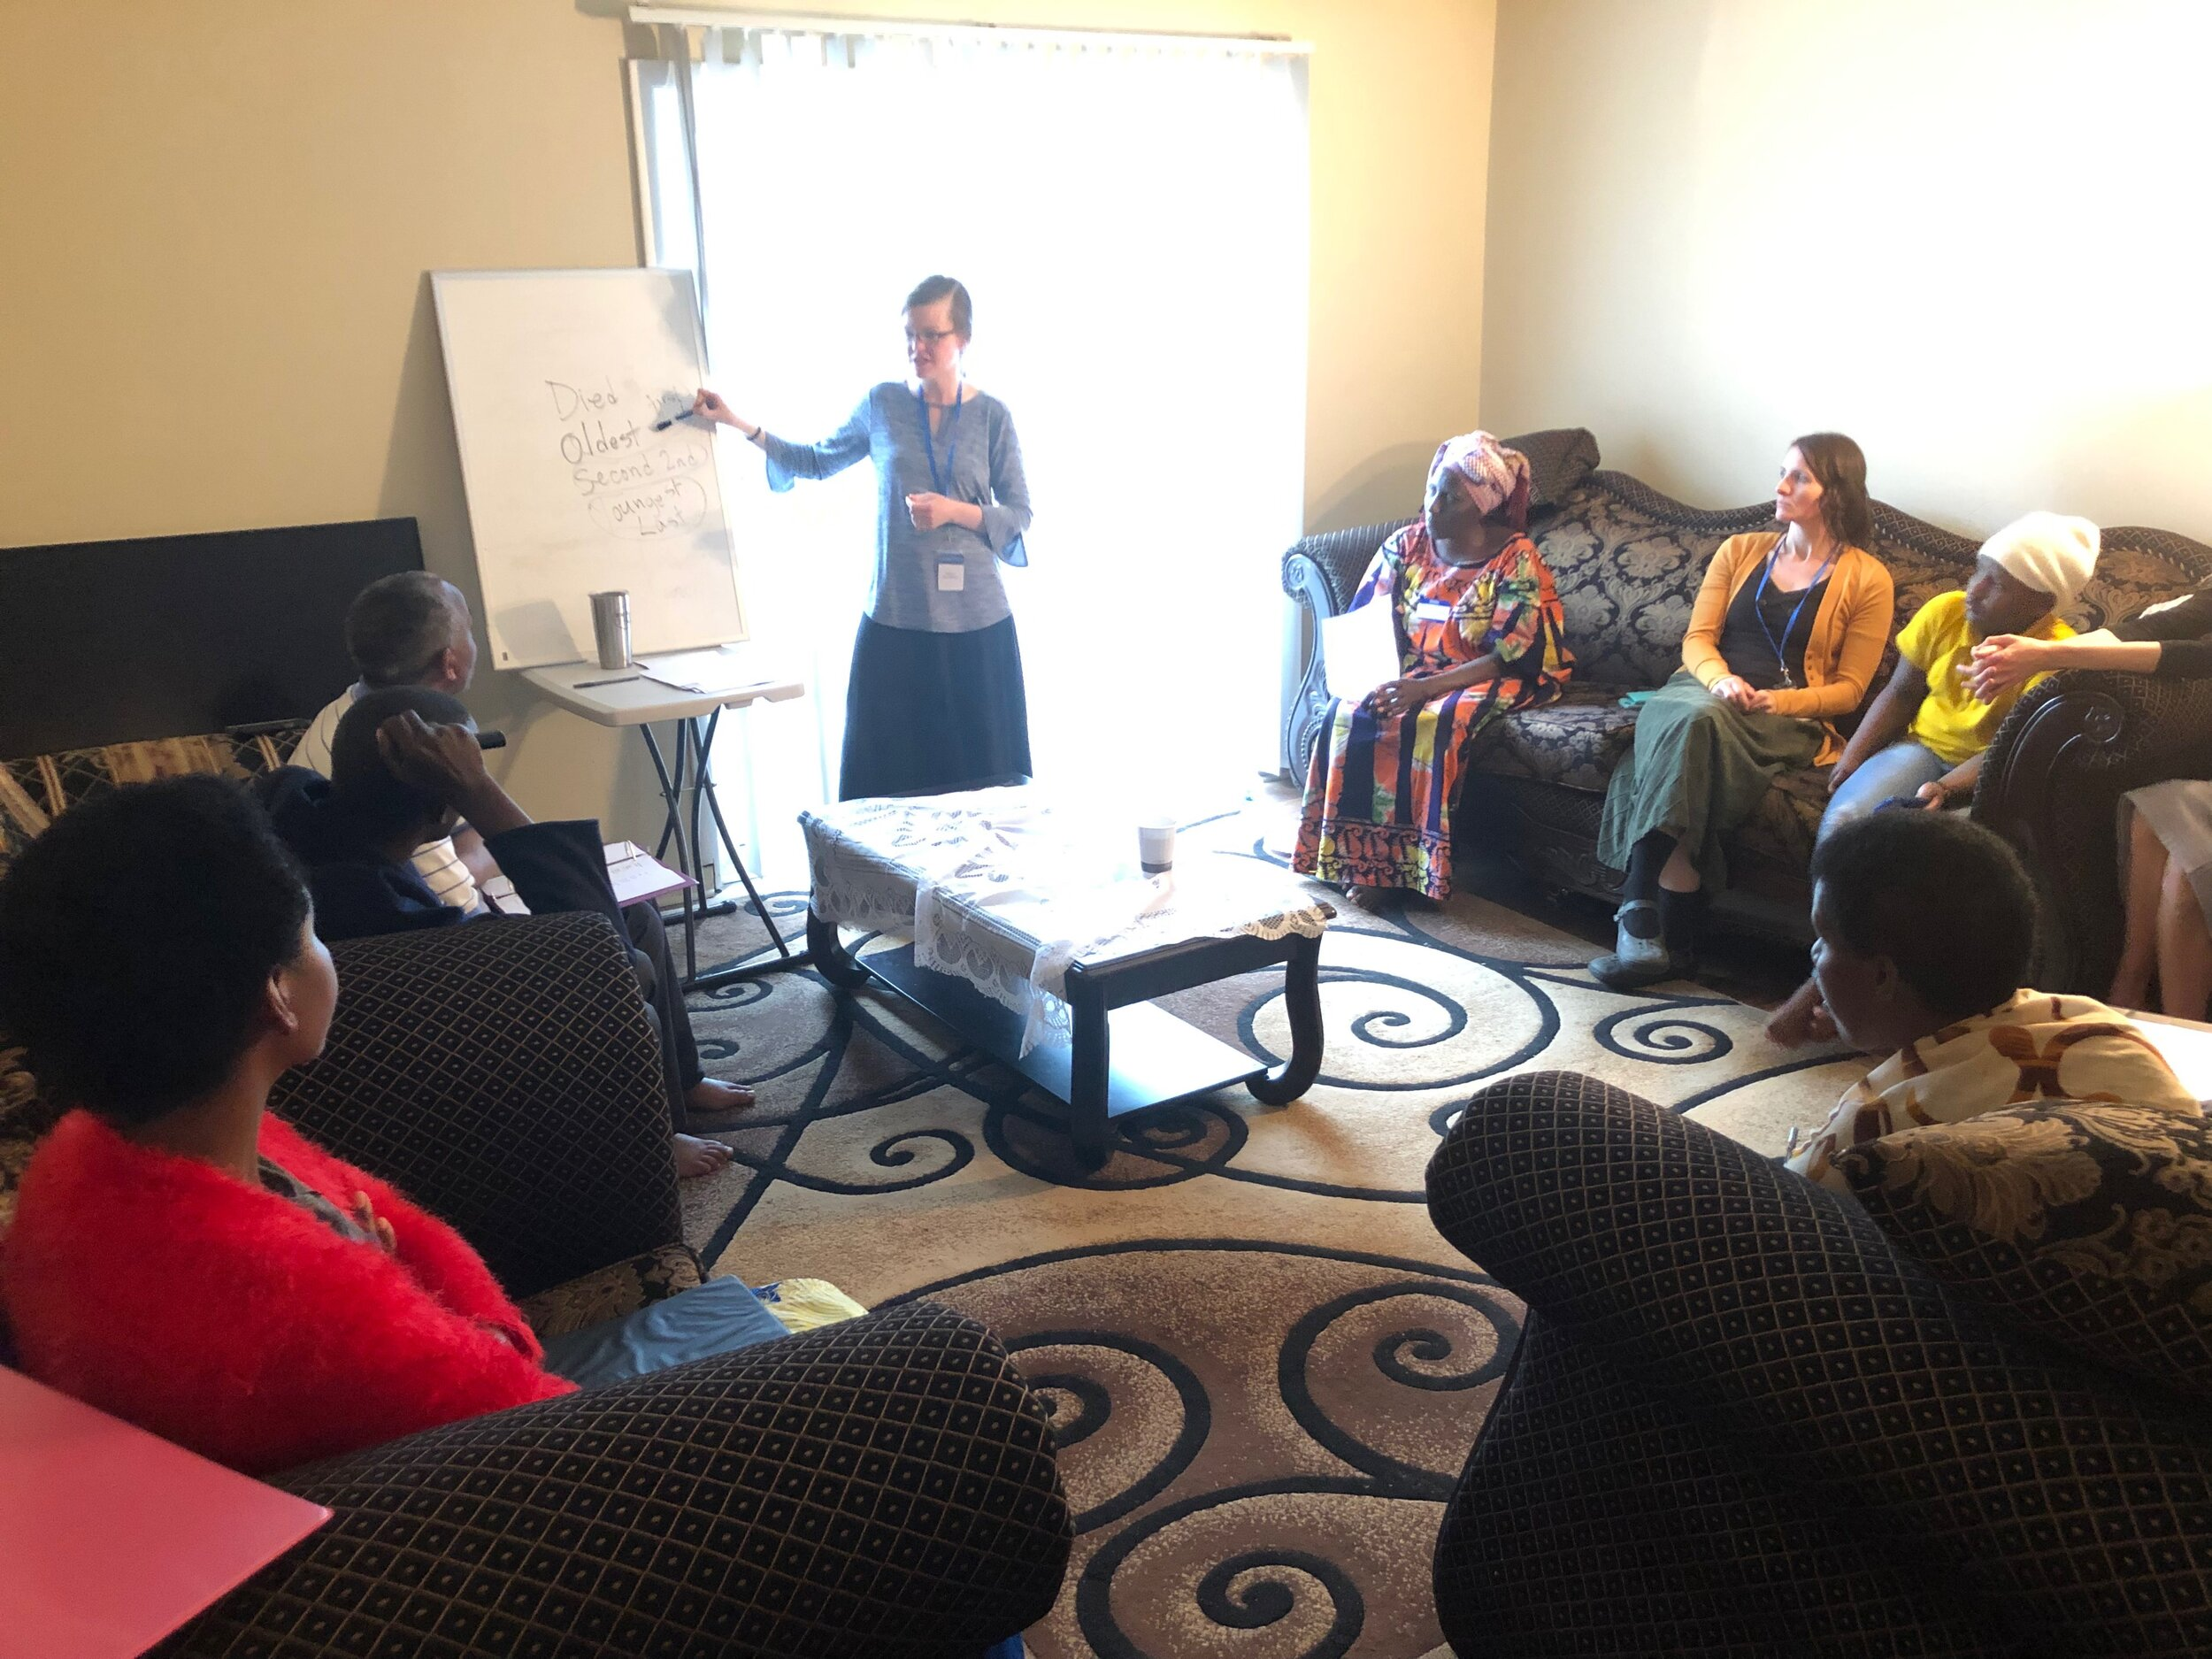 This ELL group helps refugees from the Congo. Together they're learning English as well as basic medical terminology, spelling their names with the English alphabet, considerations regarding grocery shopping and cooking in a new environment, and even financial concerns.